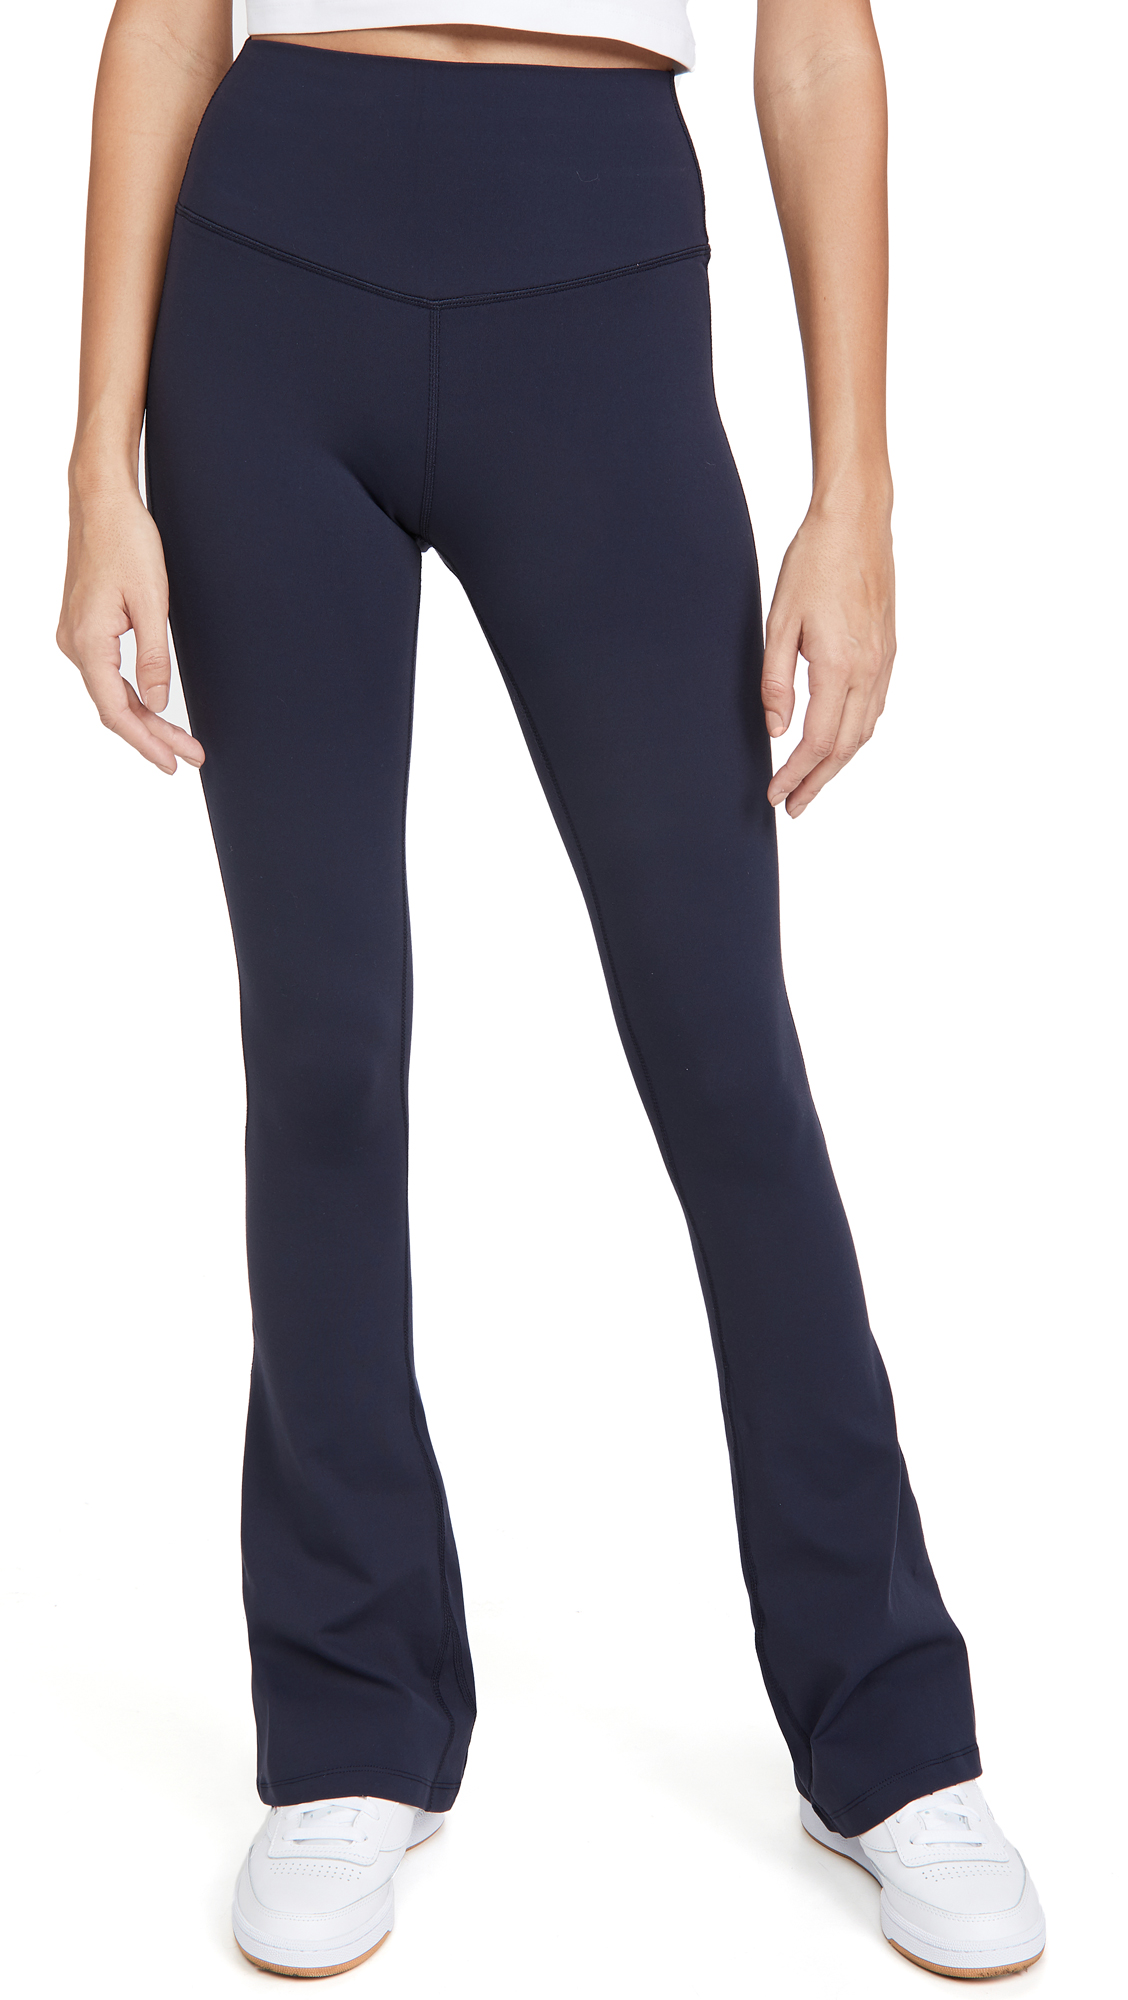 Splits59 Raquel High Waist Pants